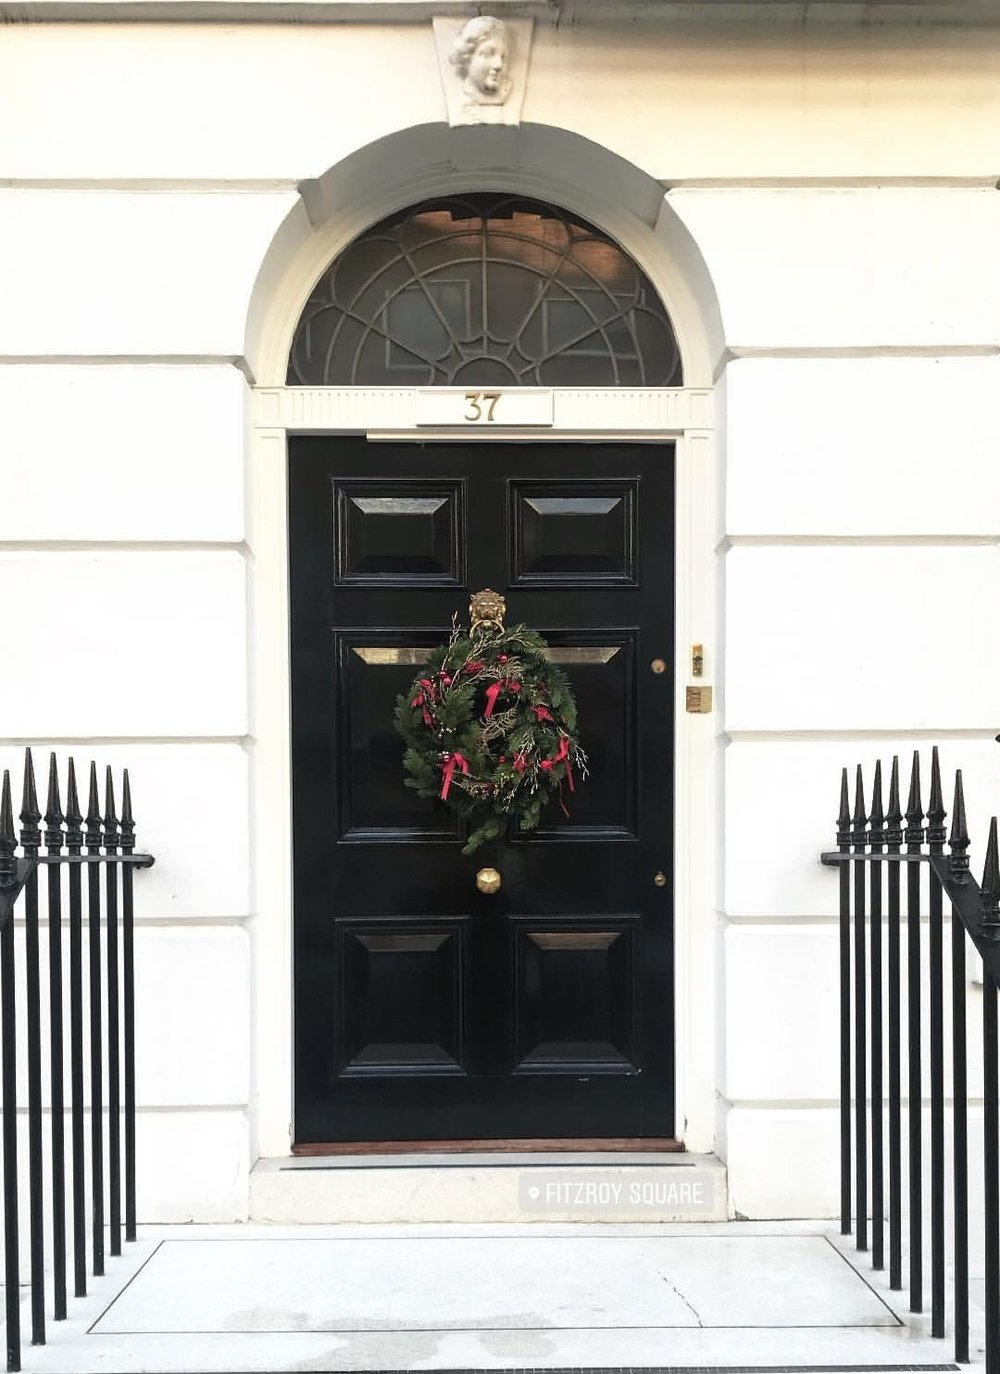 Festive Vibes - I am sucker for a cute doorway and even more so when adorned with a lovely wreath! This one was at Fitzroy Square, one of the lovely spots nearby to my office.